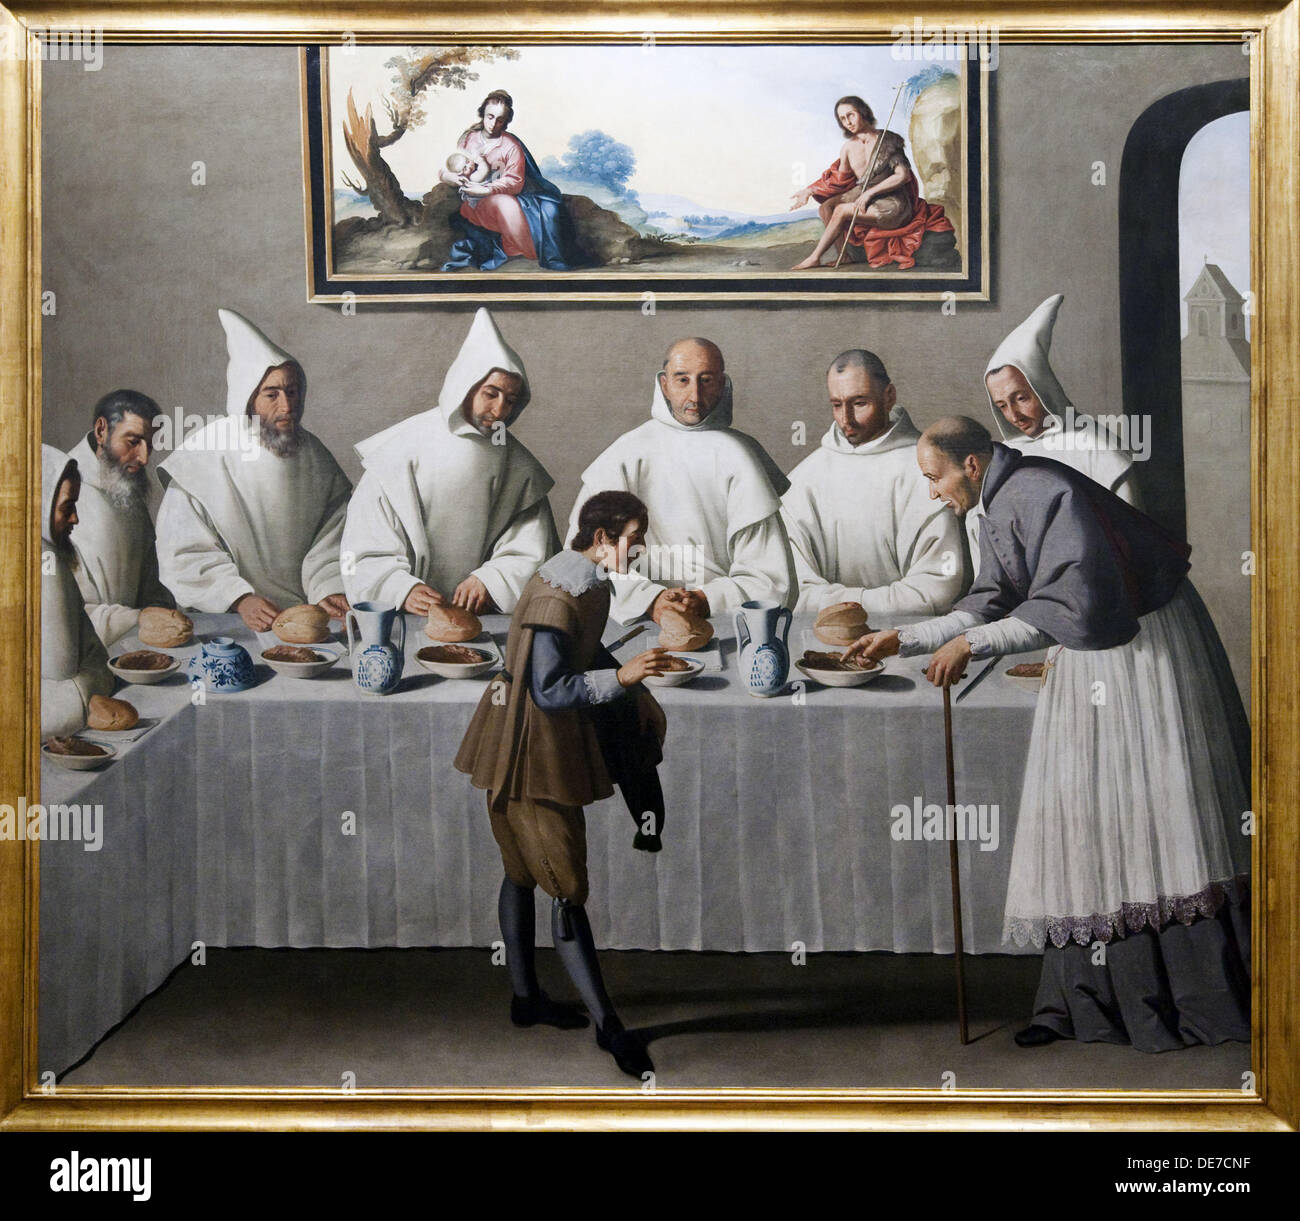 St  Hugh of Cluny in The Refectory of The Carthusians 1633, by Francisco de Zurbarán, Fine Arts Museum, Seville, Spain - Stock Image